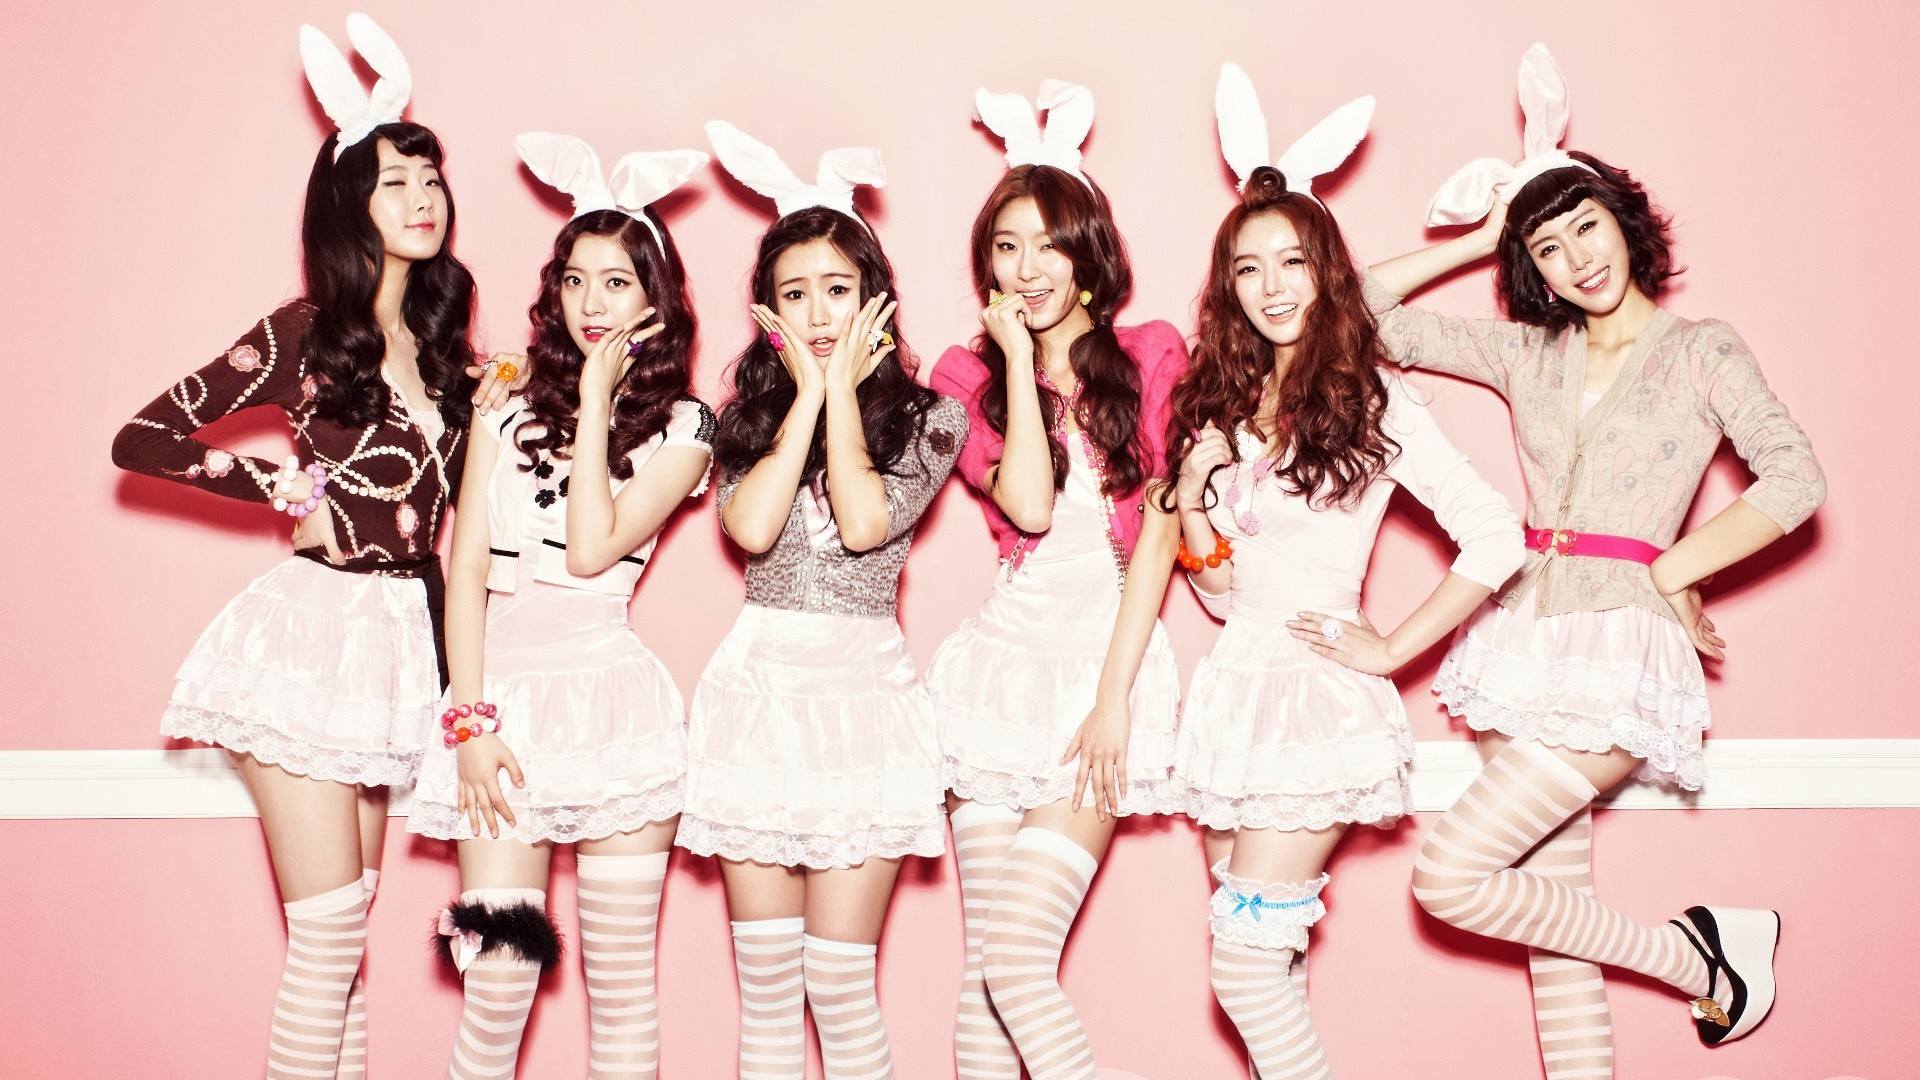 Kpop Wallpapers 69 Images